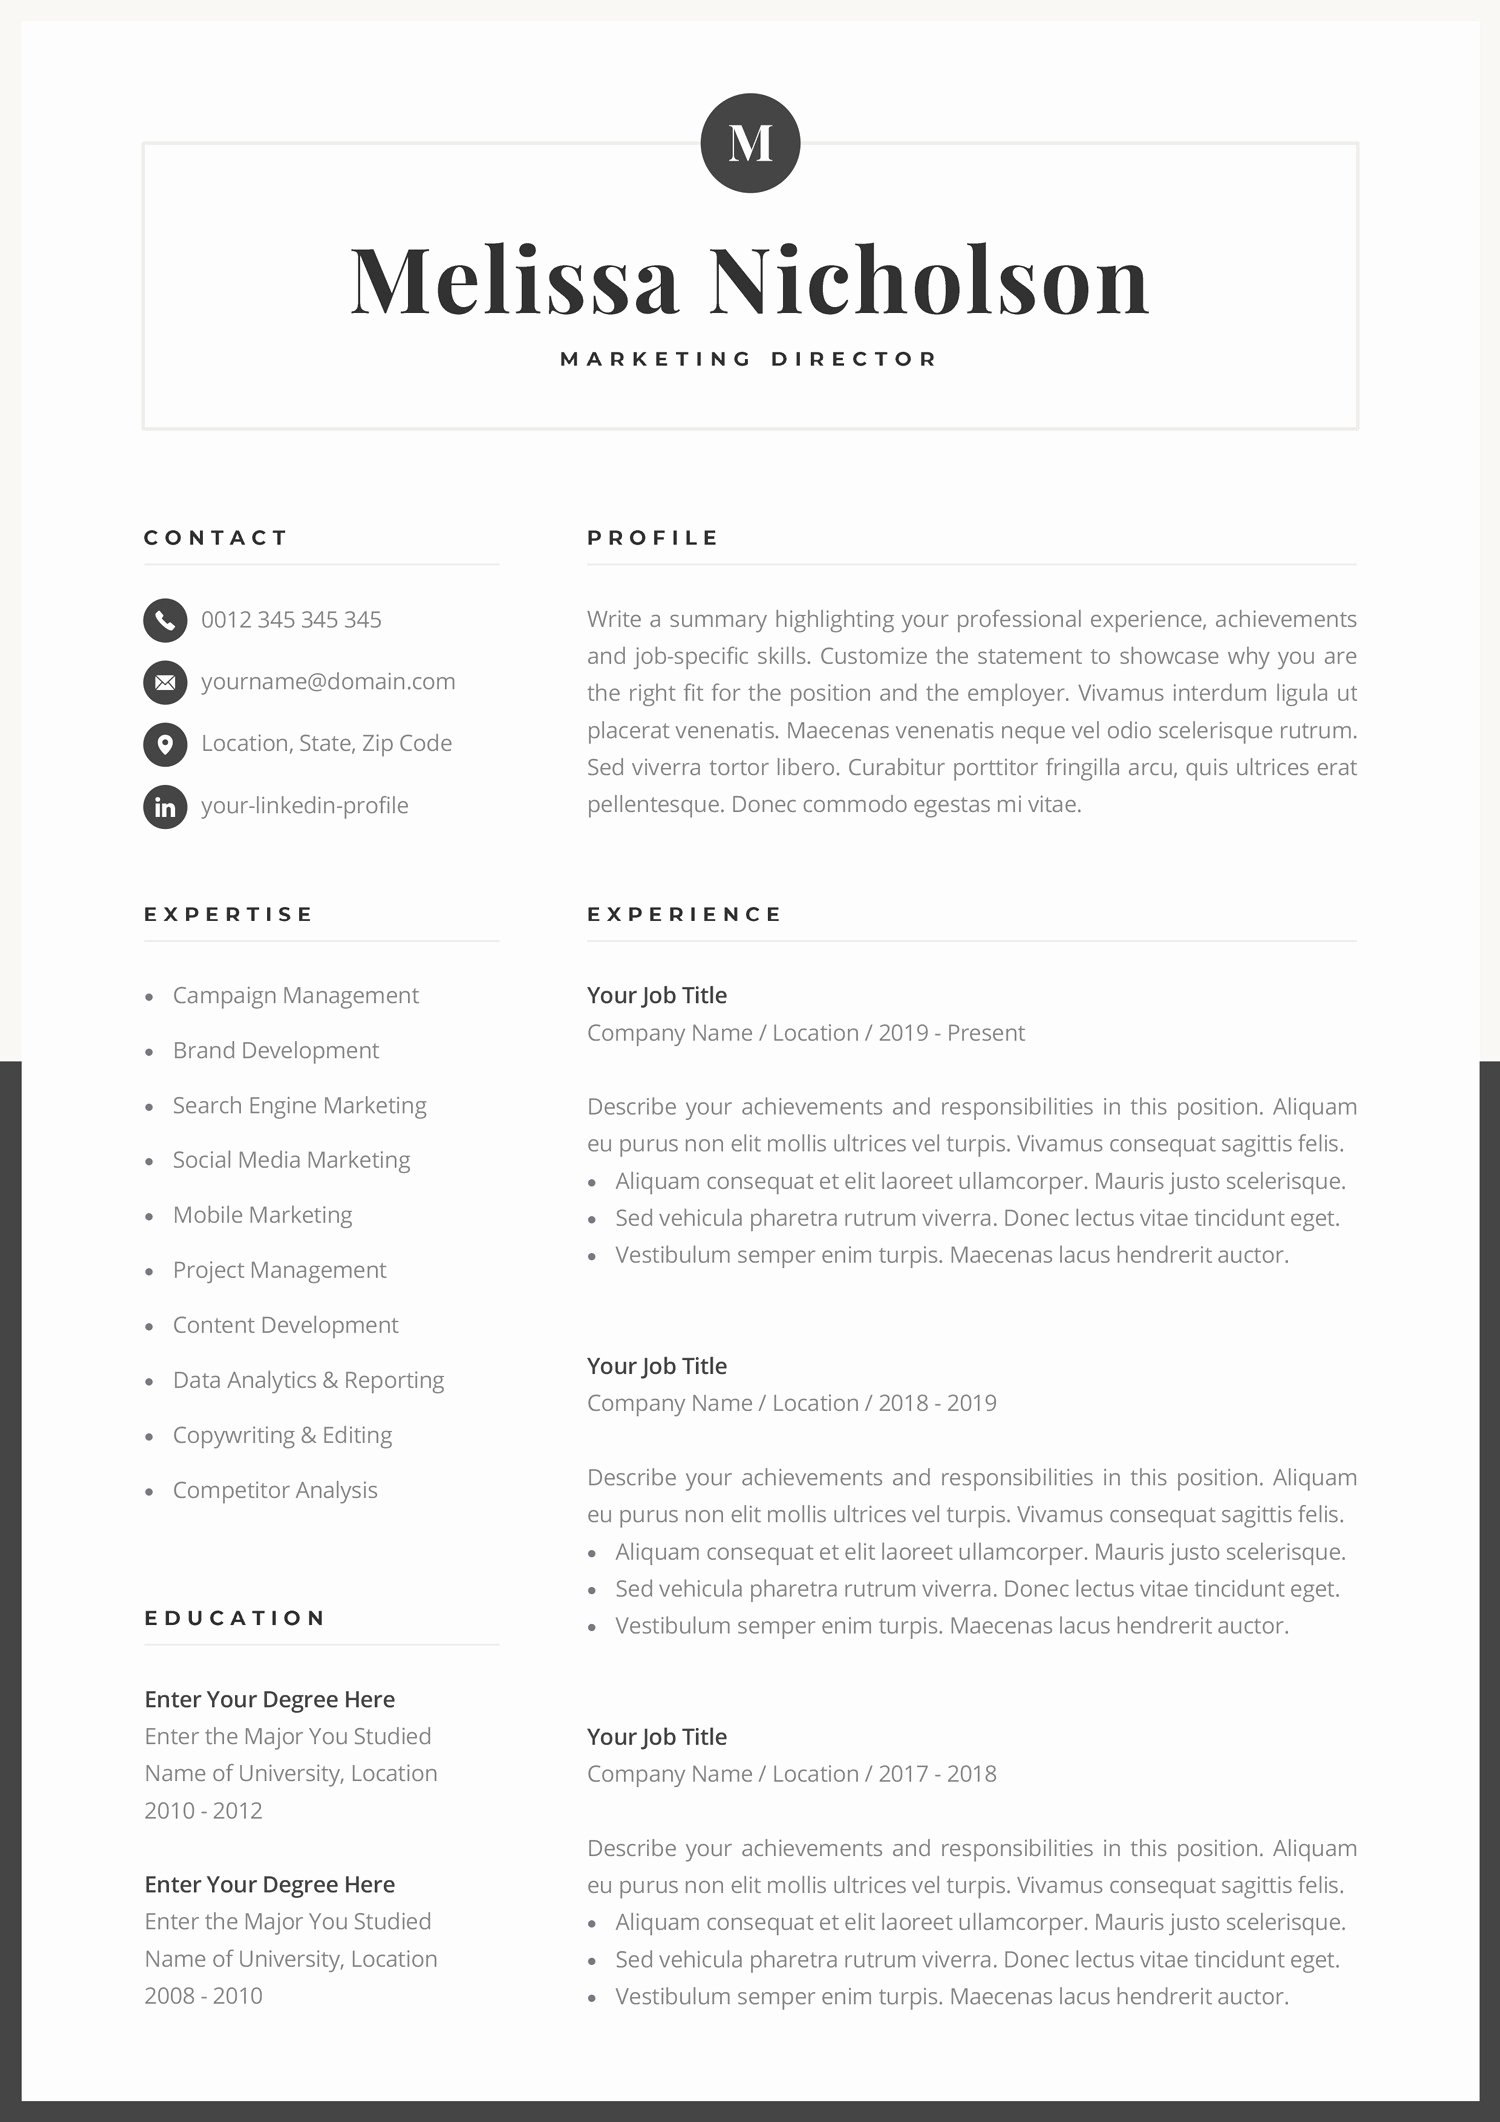 Resume Templates for Mac Fresh Cool Resume Templates for Mac